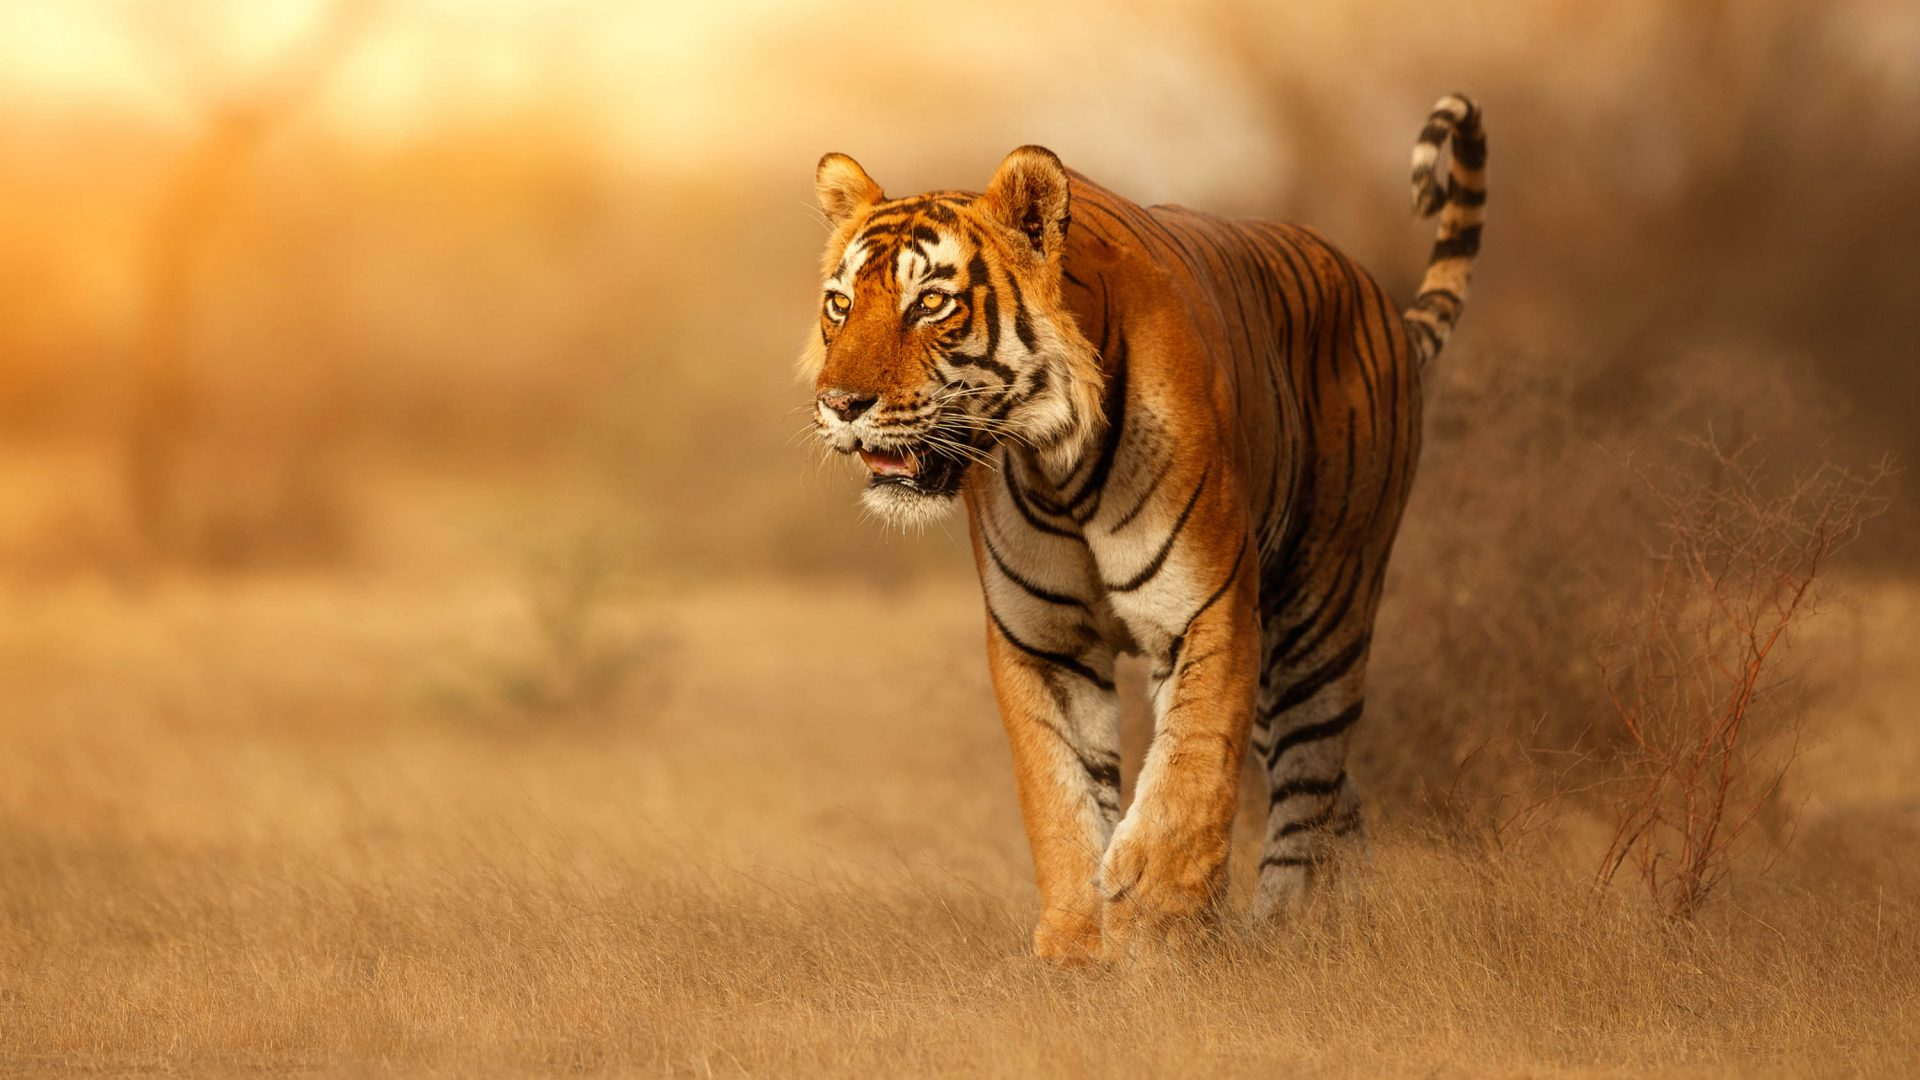 A tiger, one of the animals selected for the New Big 5.